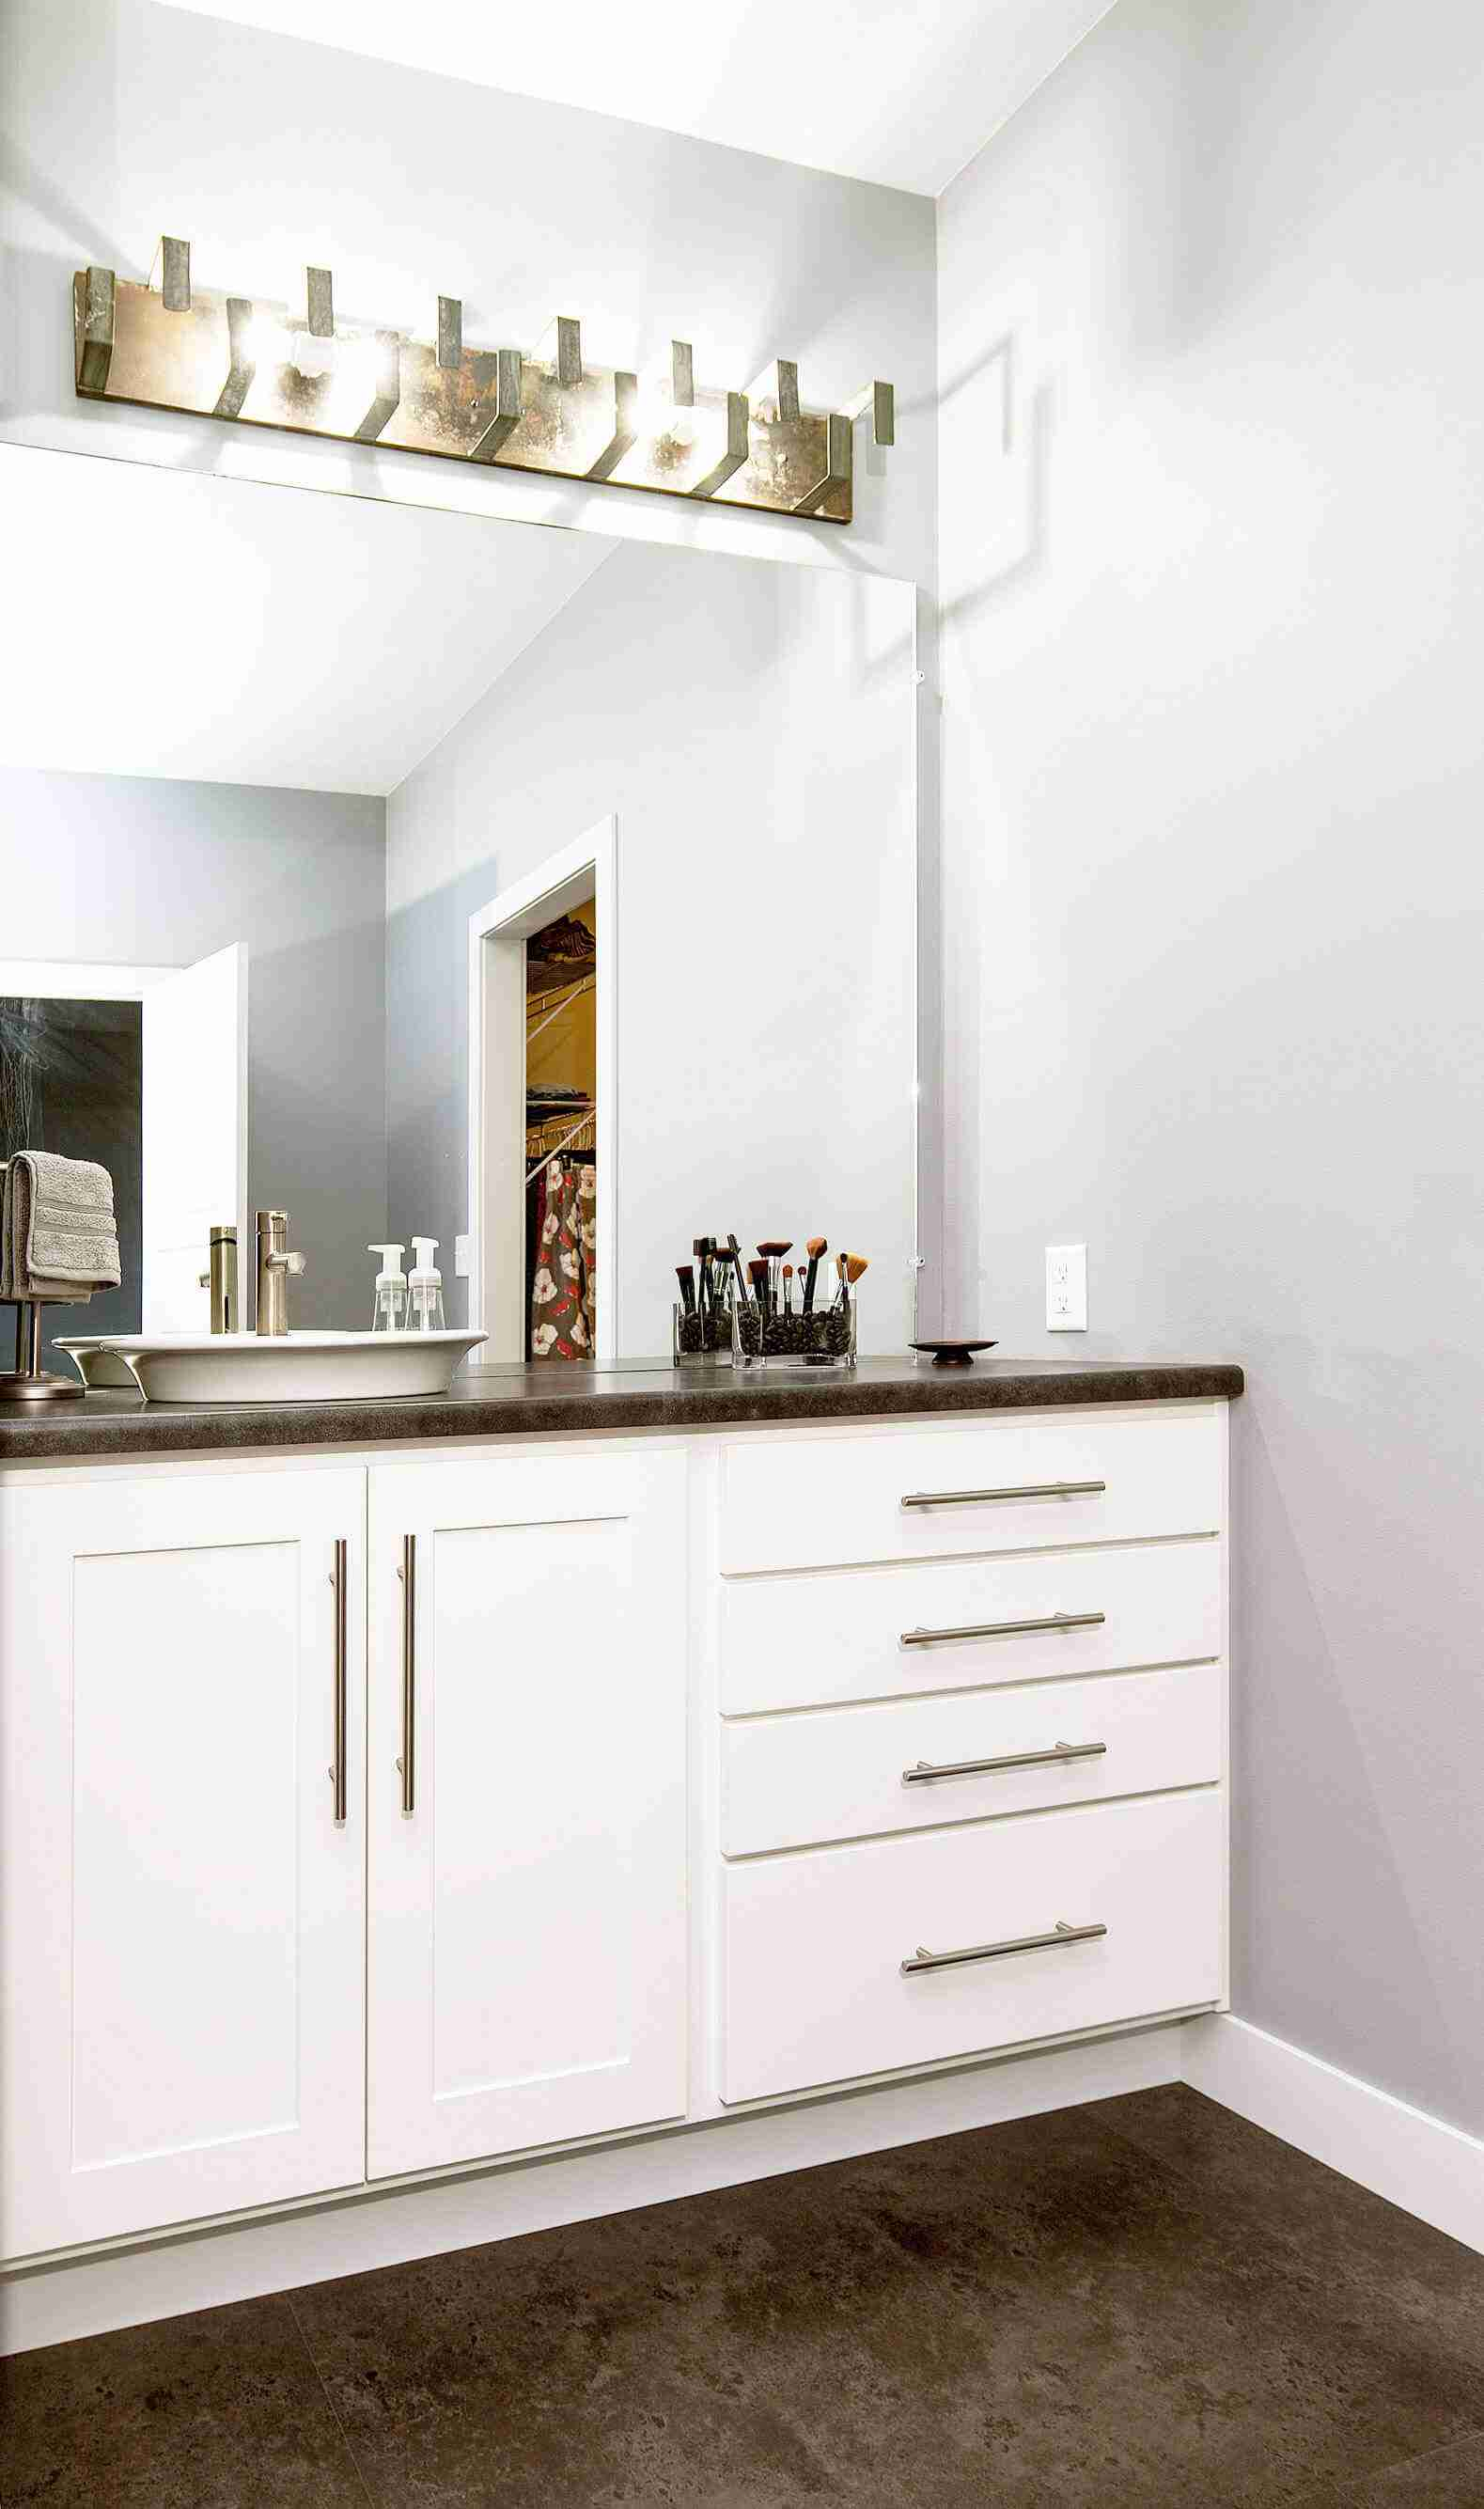 Quality Kitchen and Bathroom Remodeling in Tampa